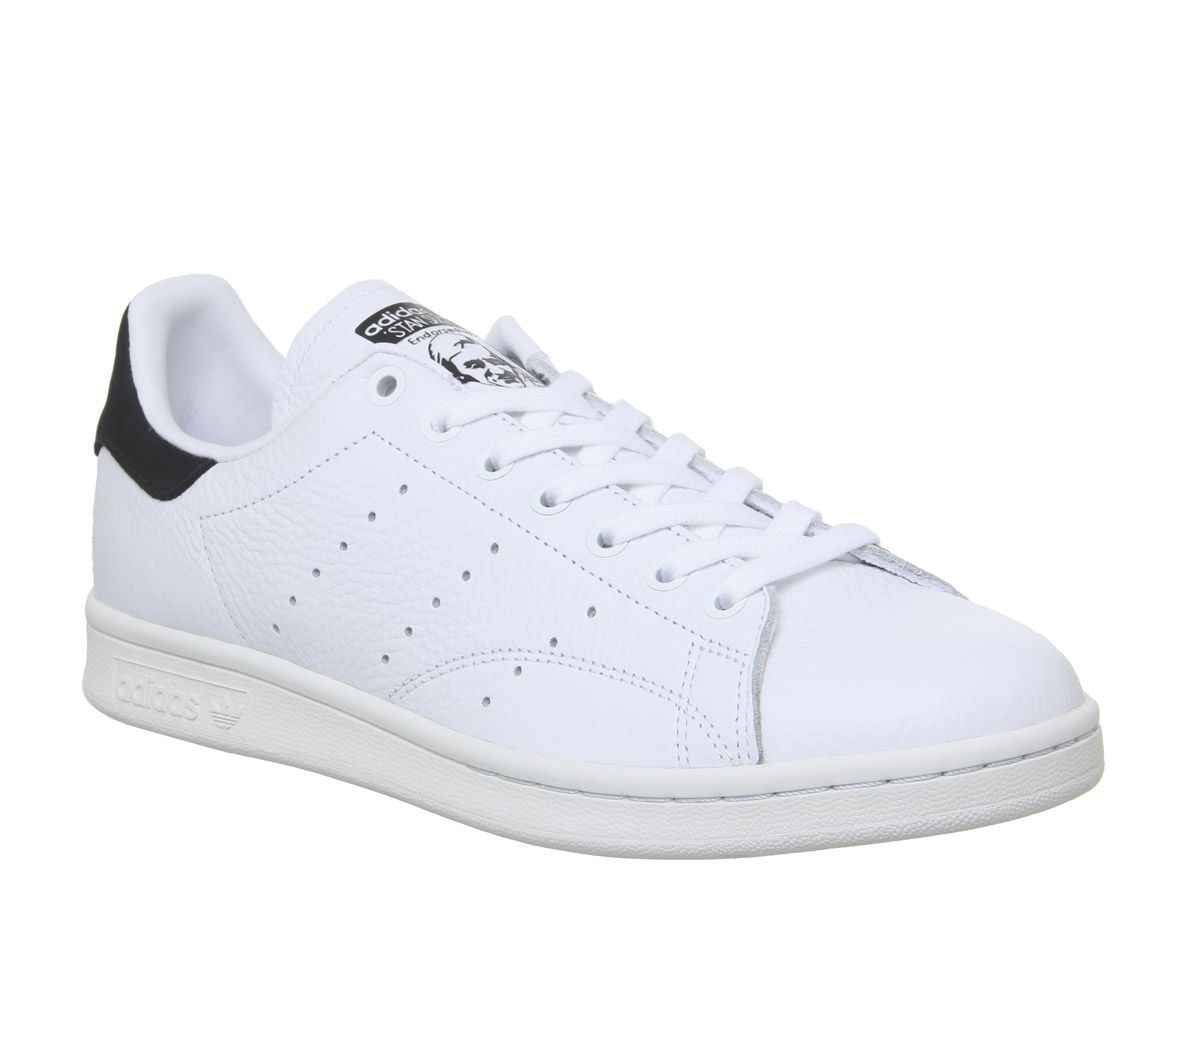 cheaper 1b344 a3457 adidas Stan Smith Trainers White White Core Black - Unisex ...